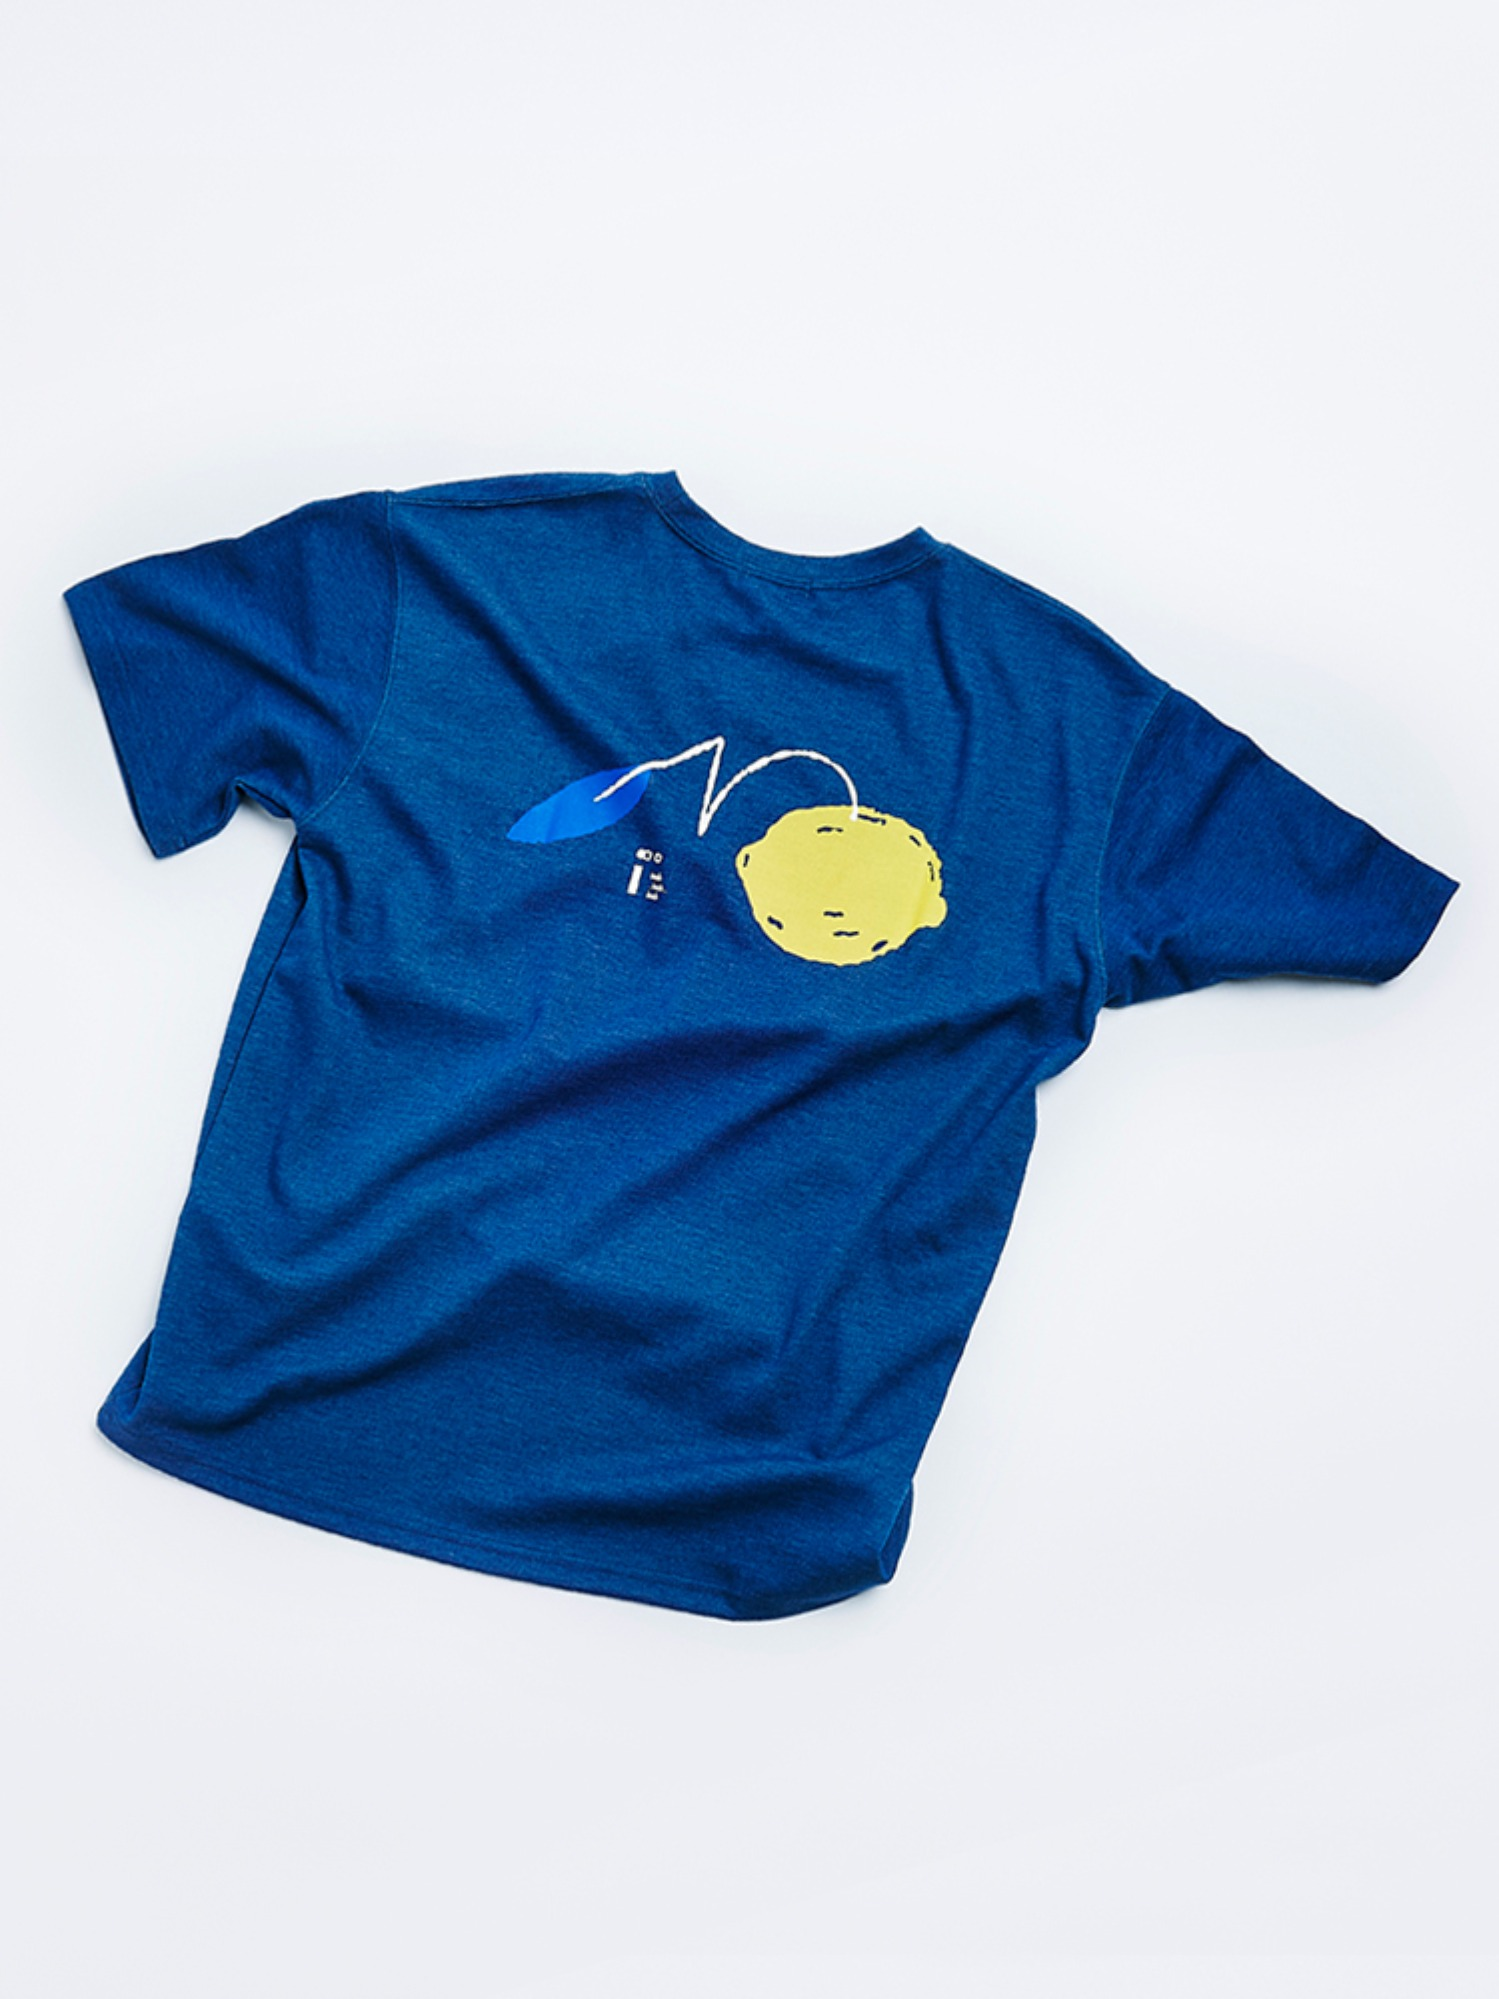 [재입고] Lemon Solo T shirt (Heather Blue Navy)